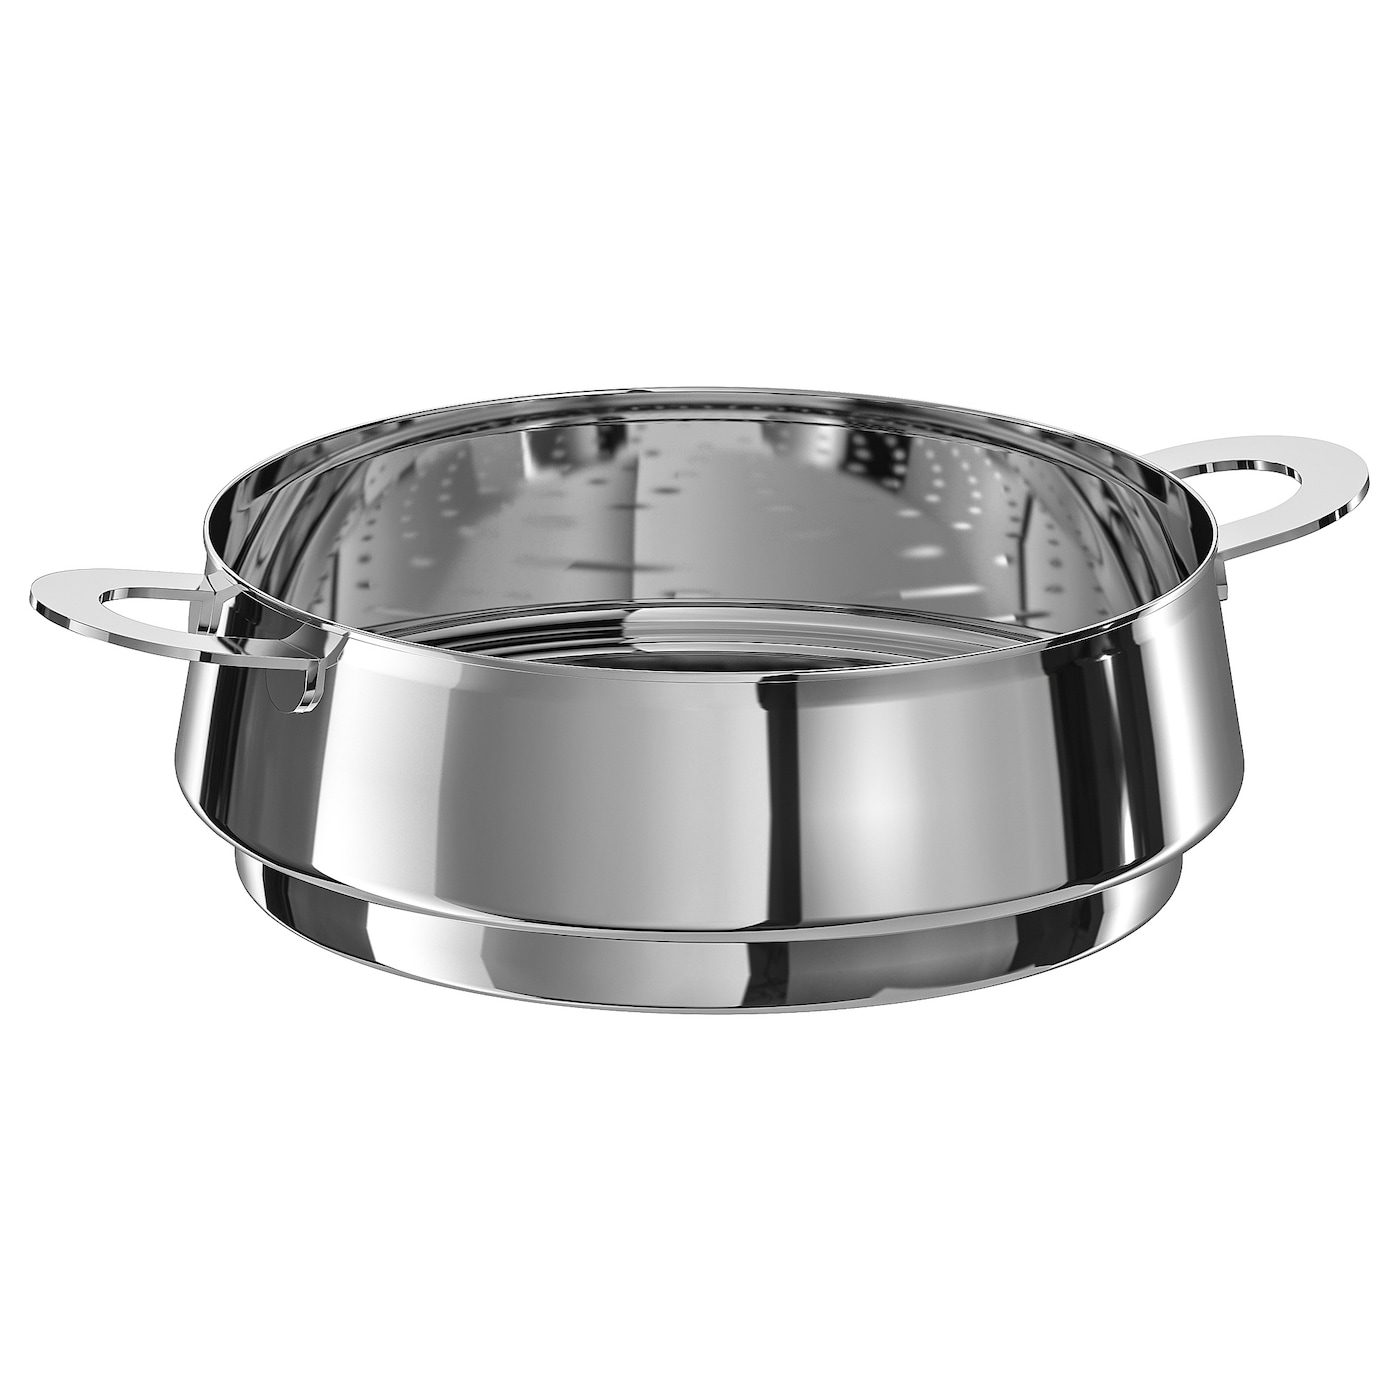 IKEA STABIL steamer insert Can be used with most 4-5-litre pots.